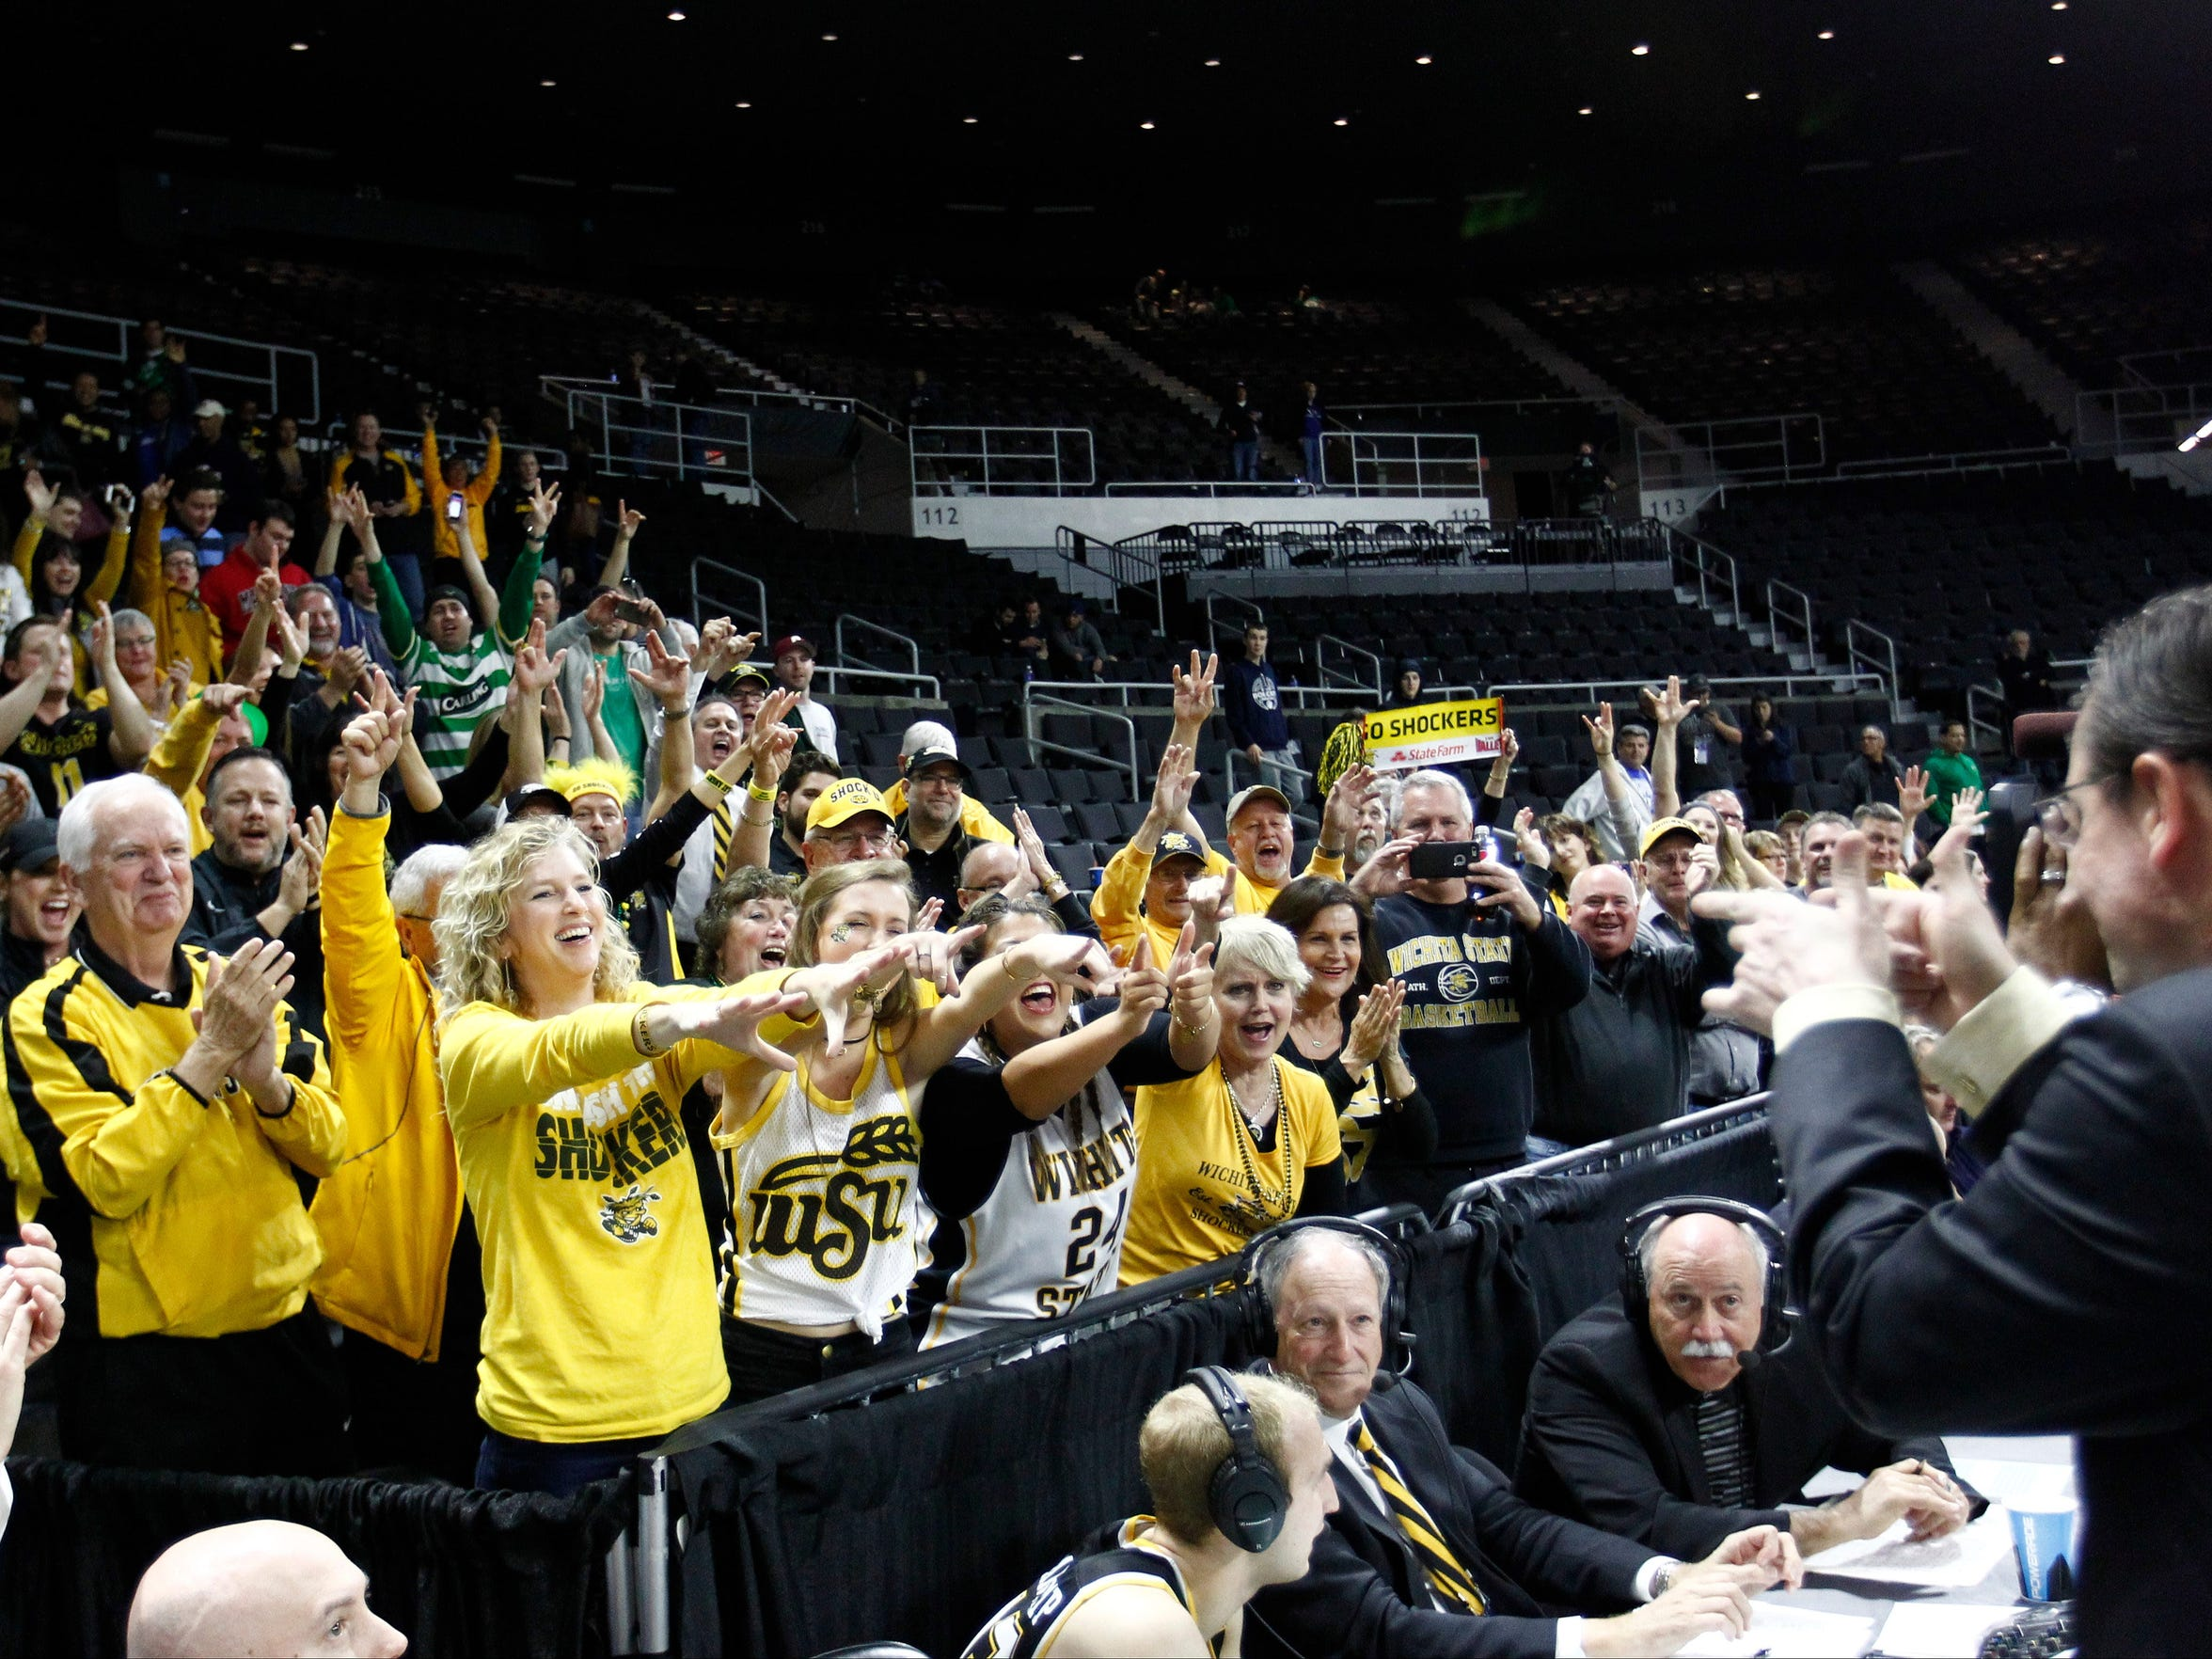 The marriage of Gregg Marshall, right, and Wichita